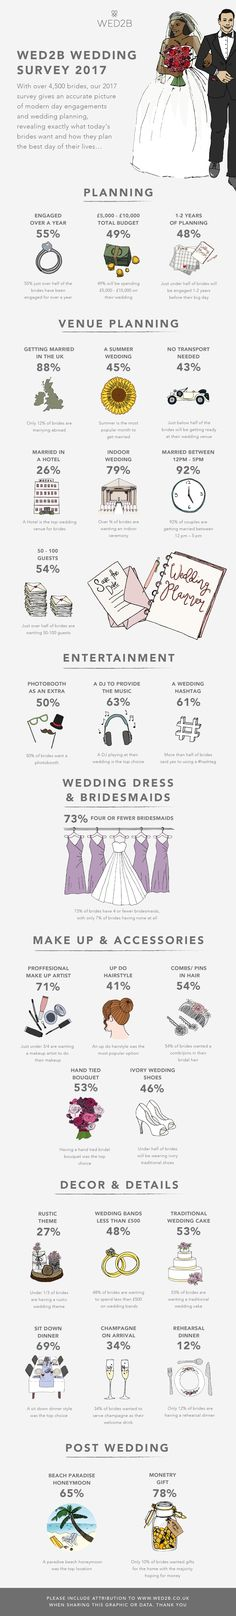 Take an illustrated look at historical wedding trends of Explore the results of brides & share the Wedding Trends infographic today. 2017 Wedding Trends, Wedding 2017, Post Wedding, Writers Write, Industrial Wedding, Insight, Infographic, Wedding Planning, Wedding Inspiration